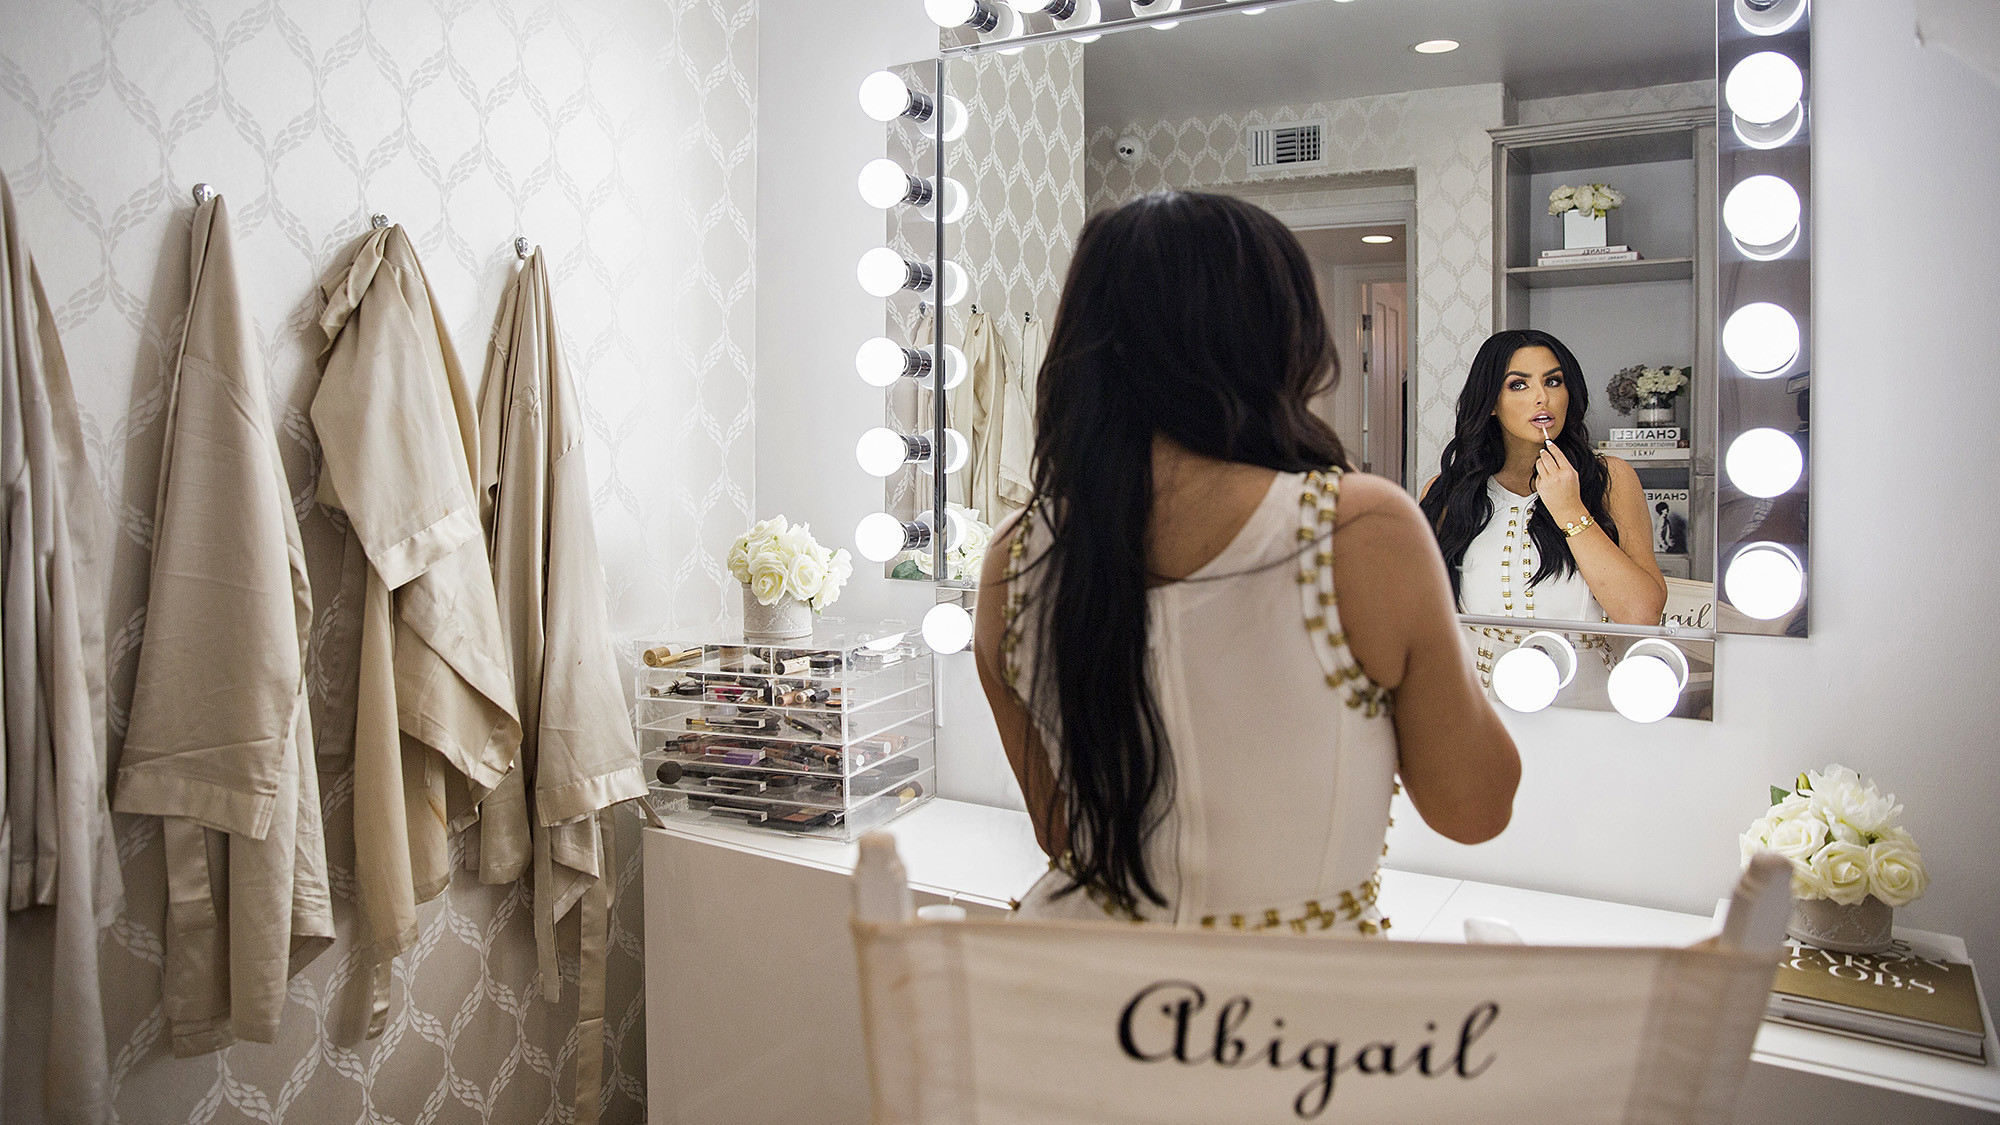 Zillow Real Estate Hot Property Before And After Model Abigail Ratchford